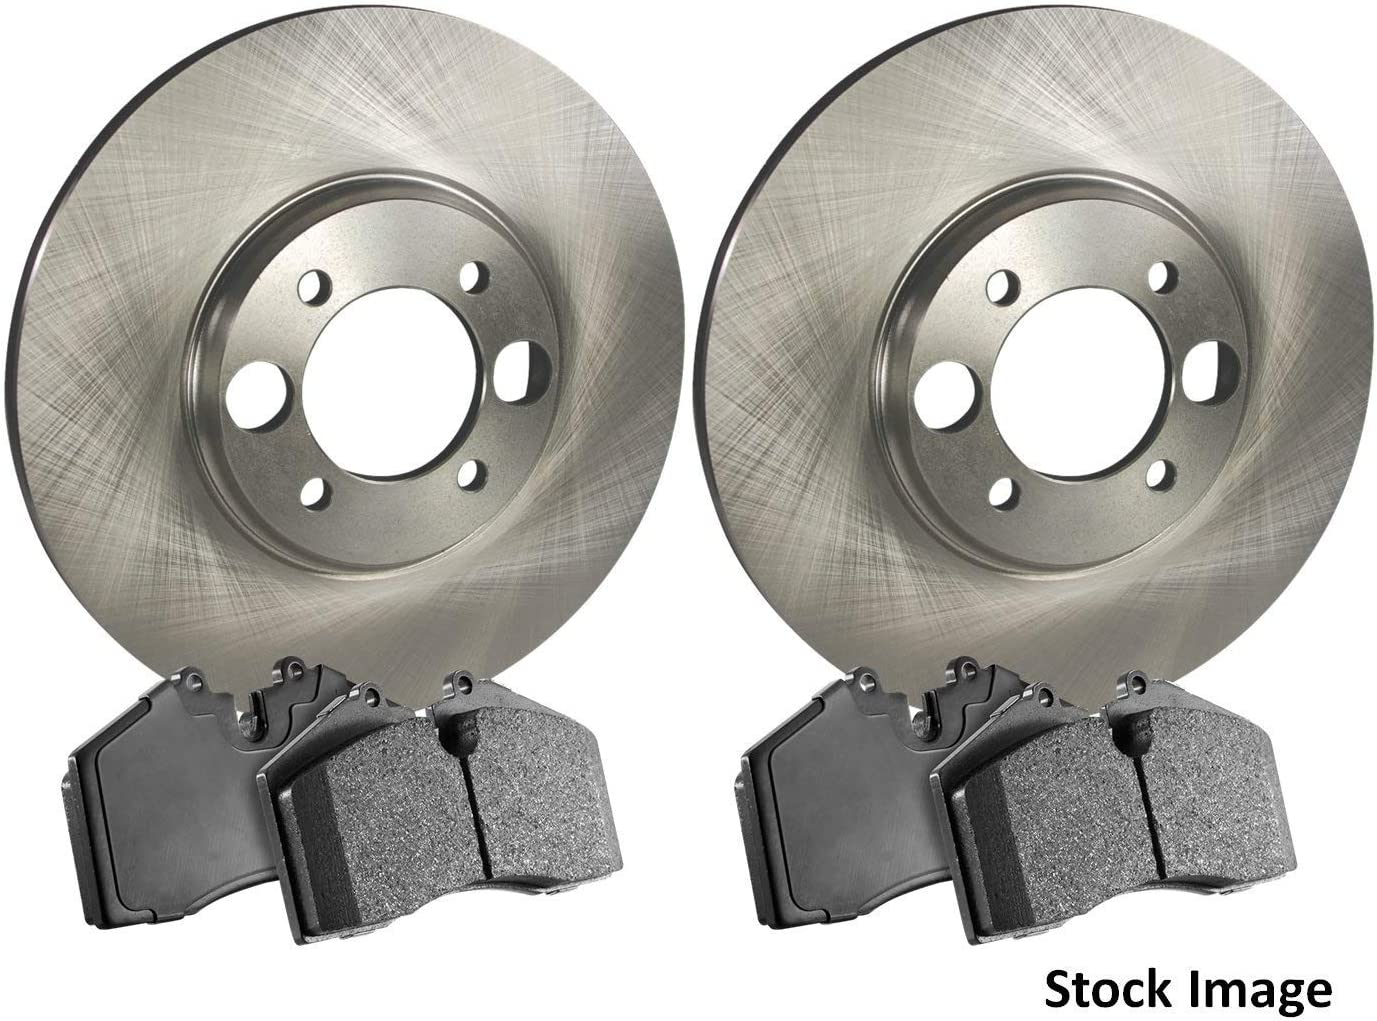 One Year Warranty Stirling For Both Left and Right 2016 for Ford Transit Connect Front Premium Quality Disc Brake Rotors And Ceramic Brake Pads -